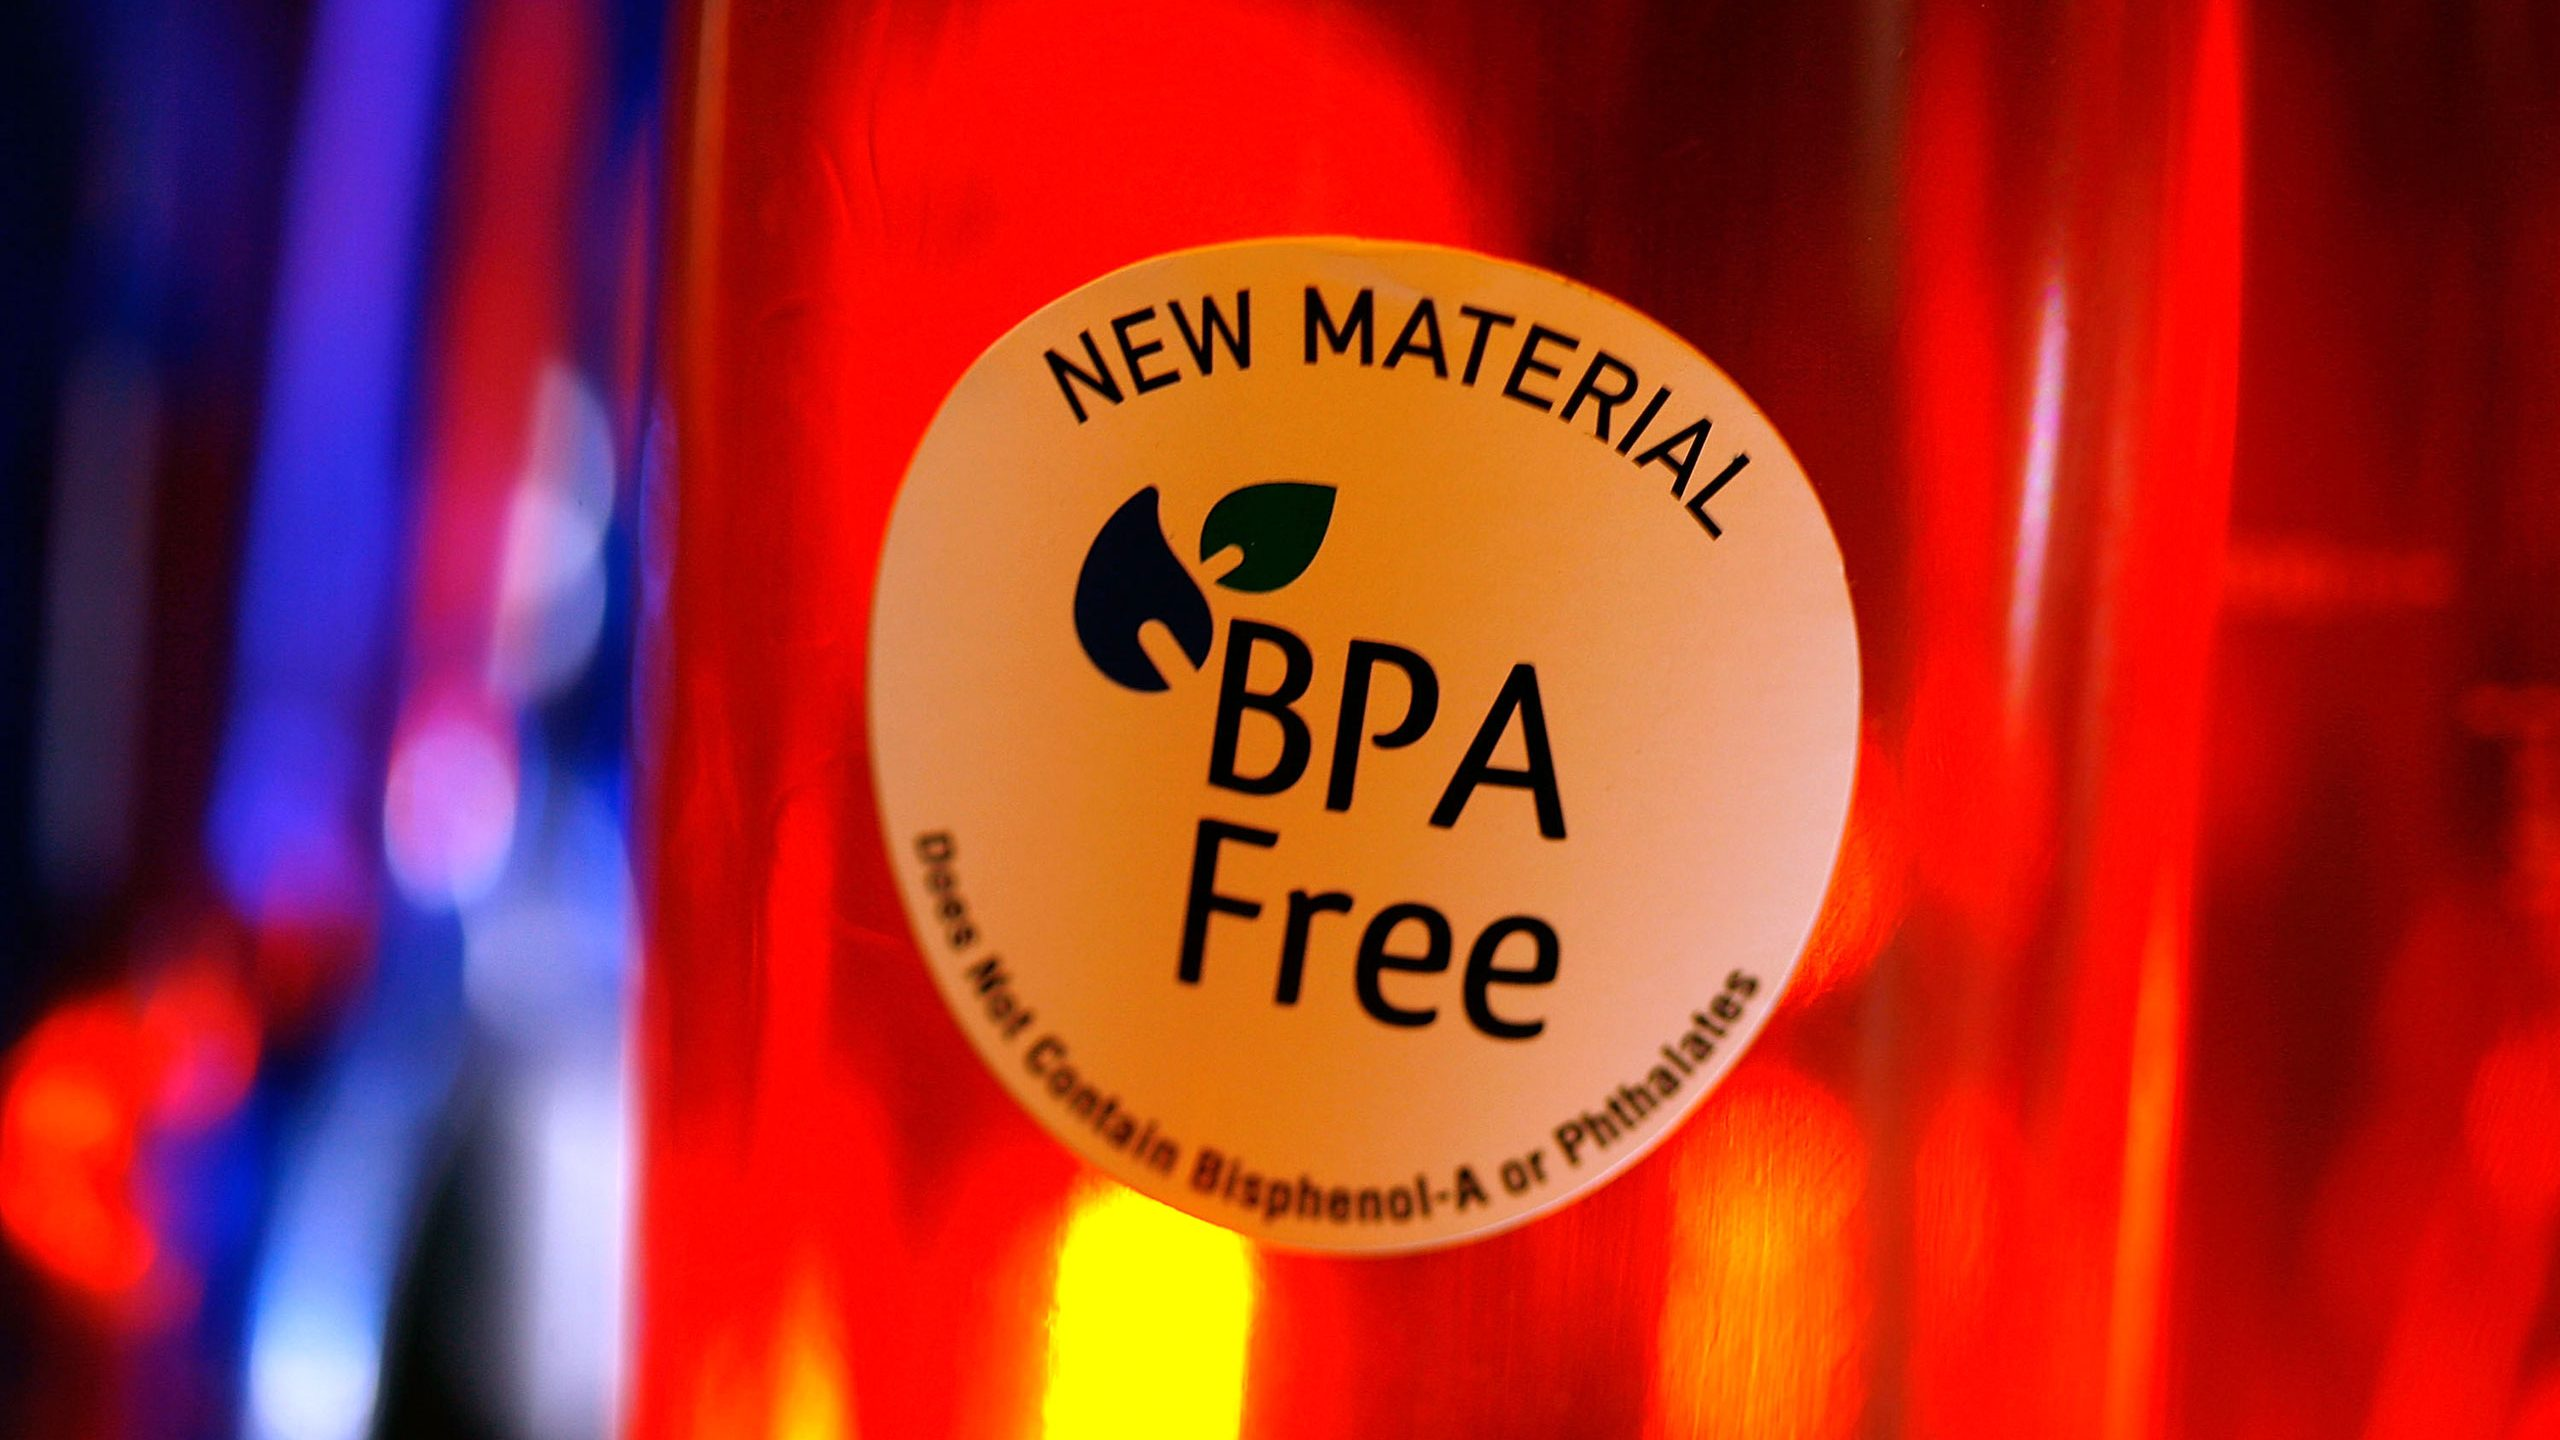 BPA Substitute Chemicals May be More Harmful than BPA Itself